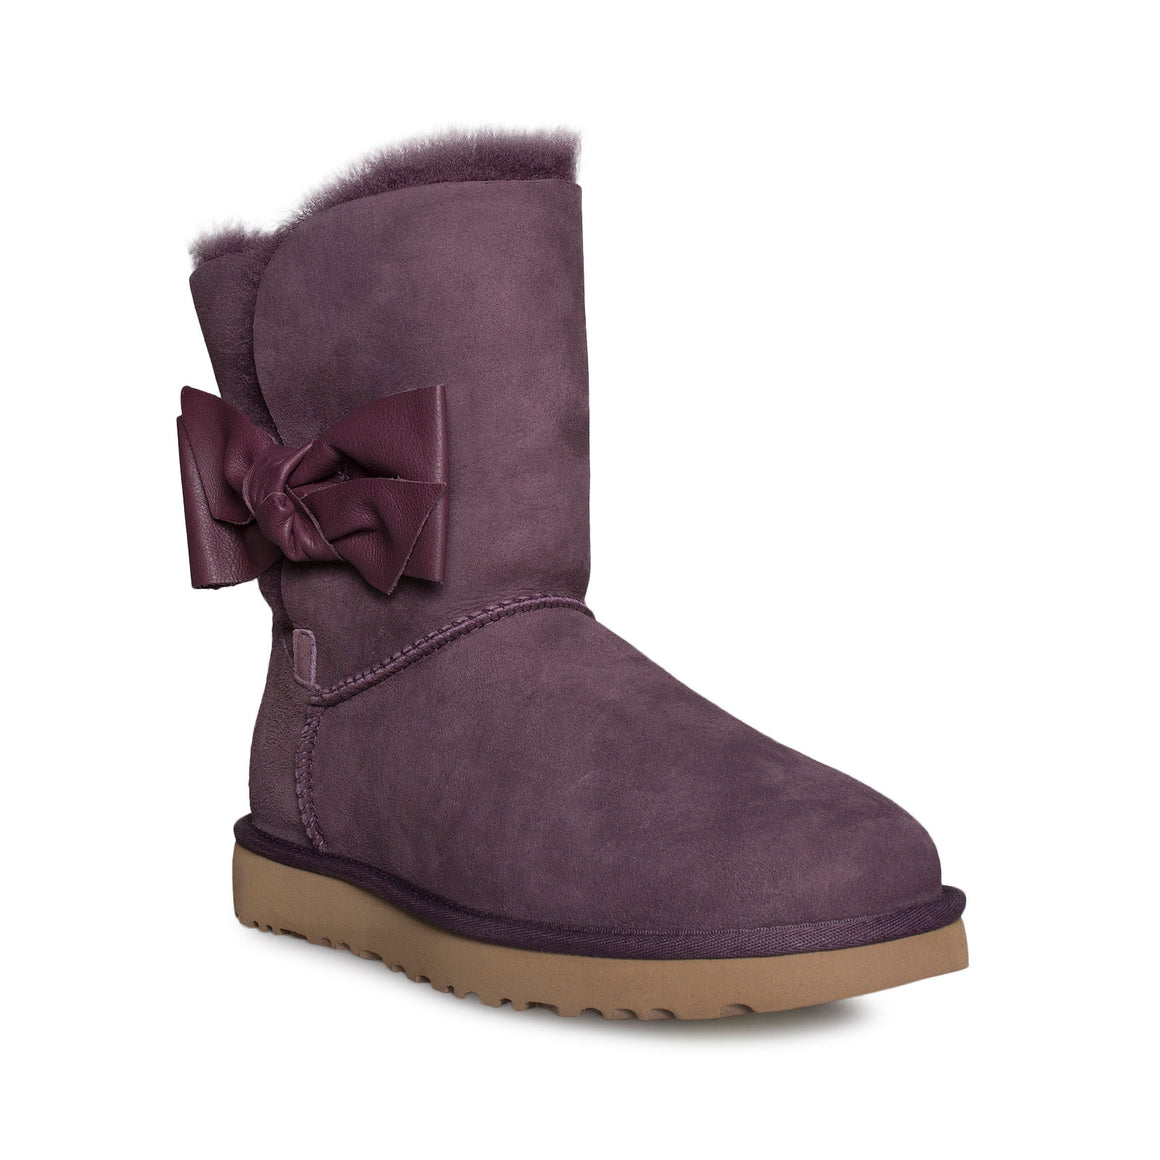 UGG Daelynn Port Boots - Women's